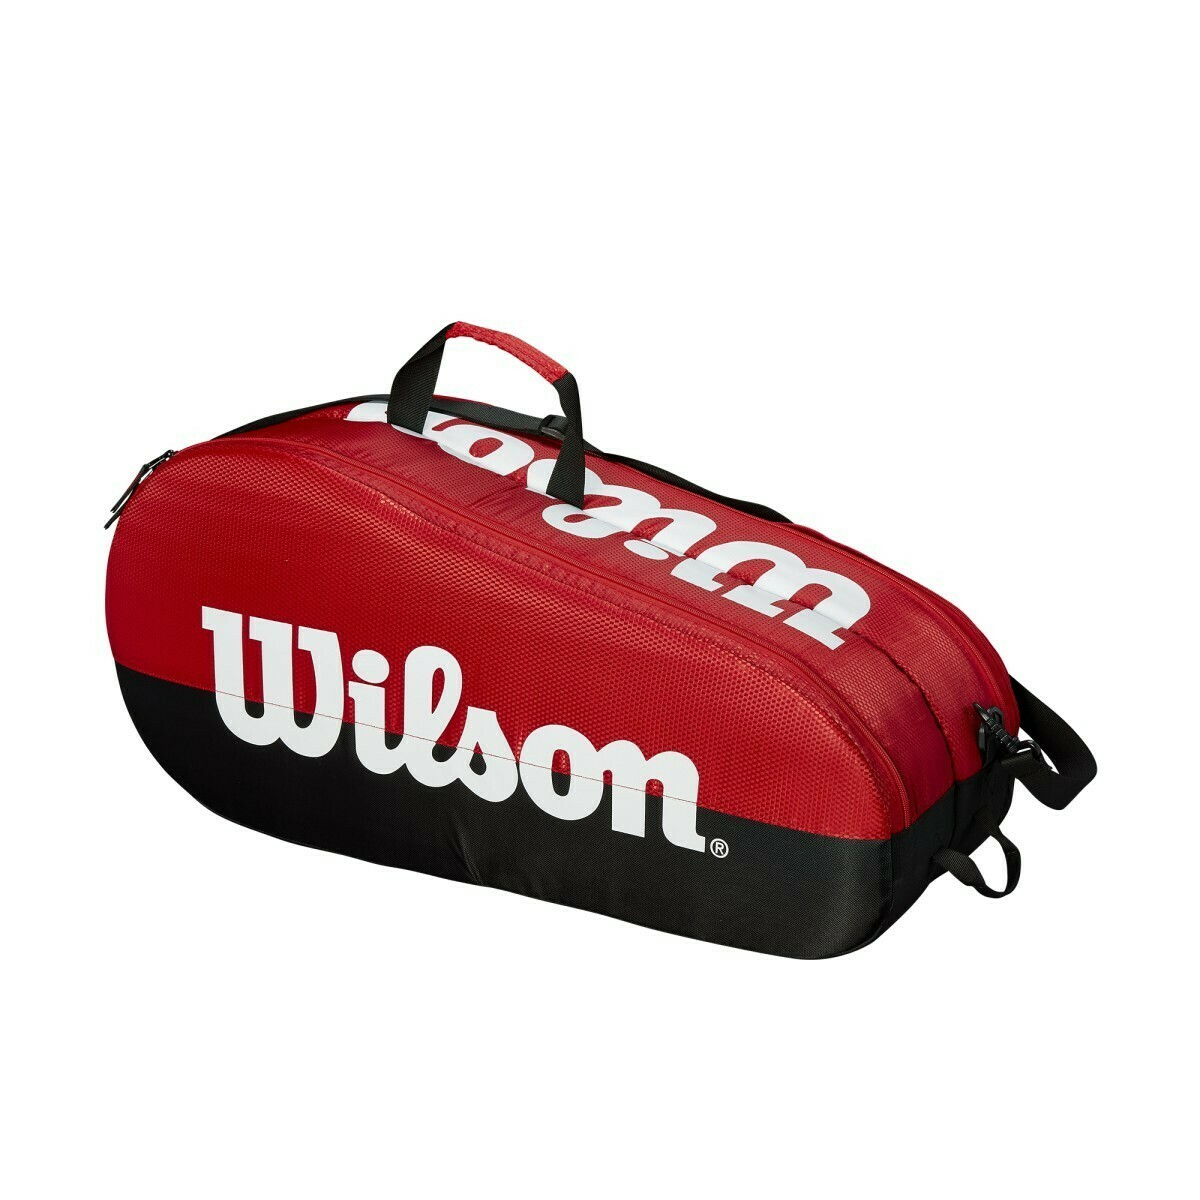 Wilson Team 2 Comp Bag - 6 Pack